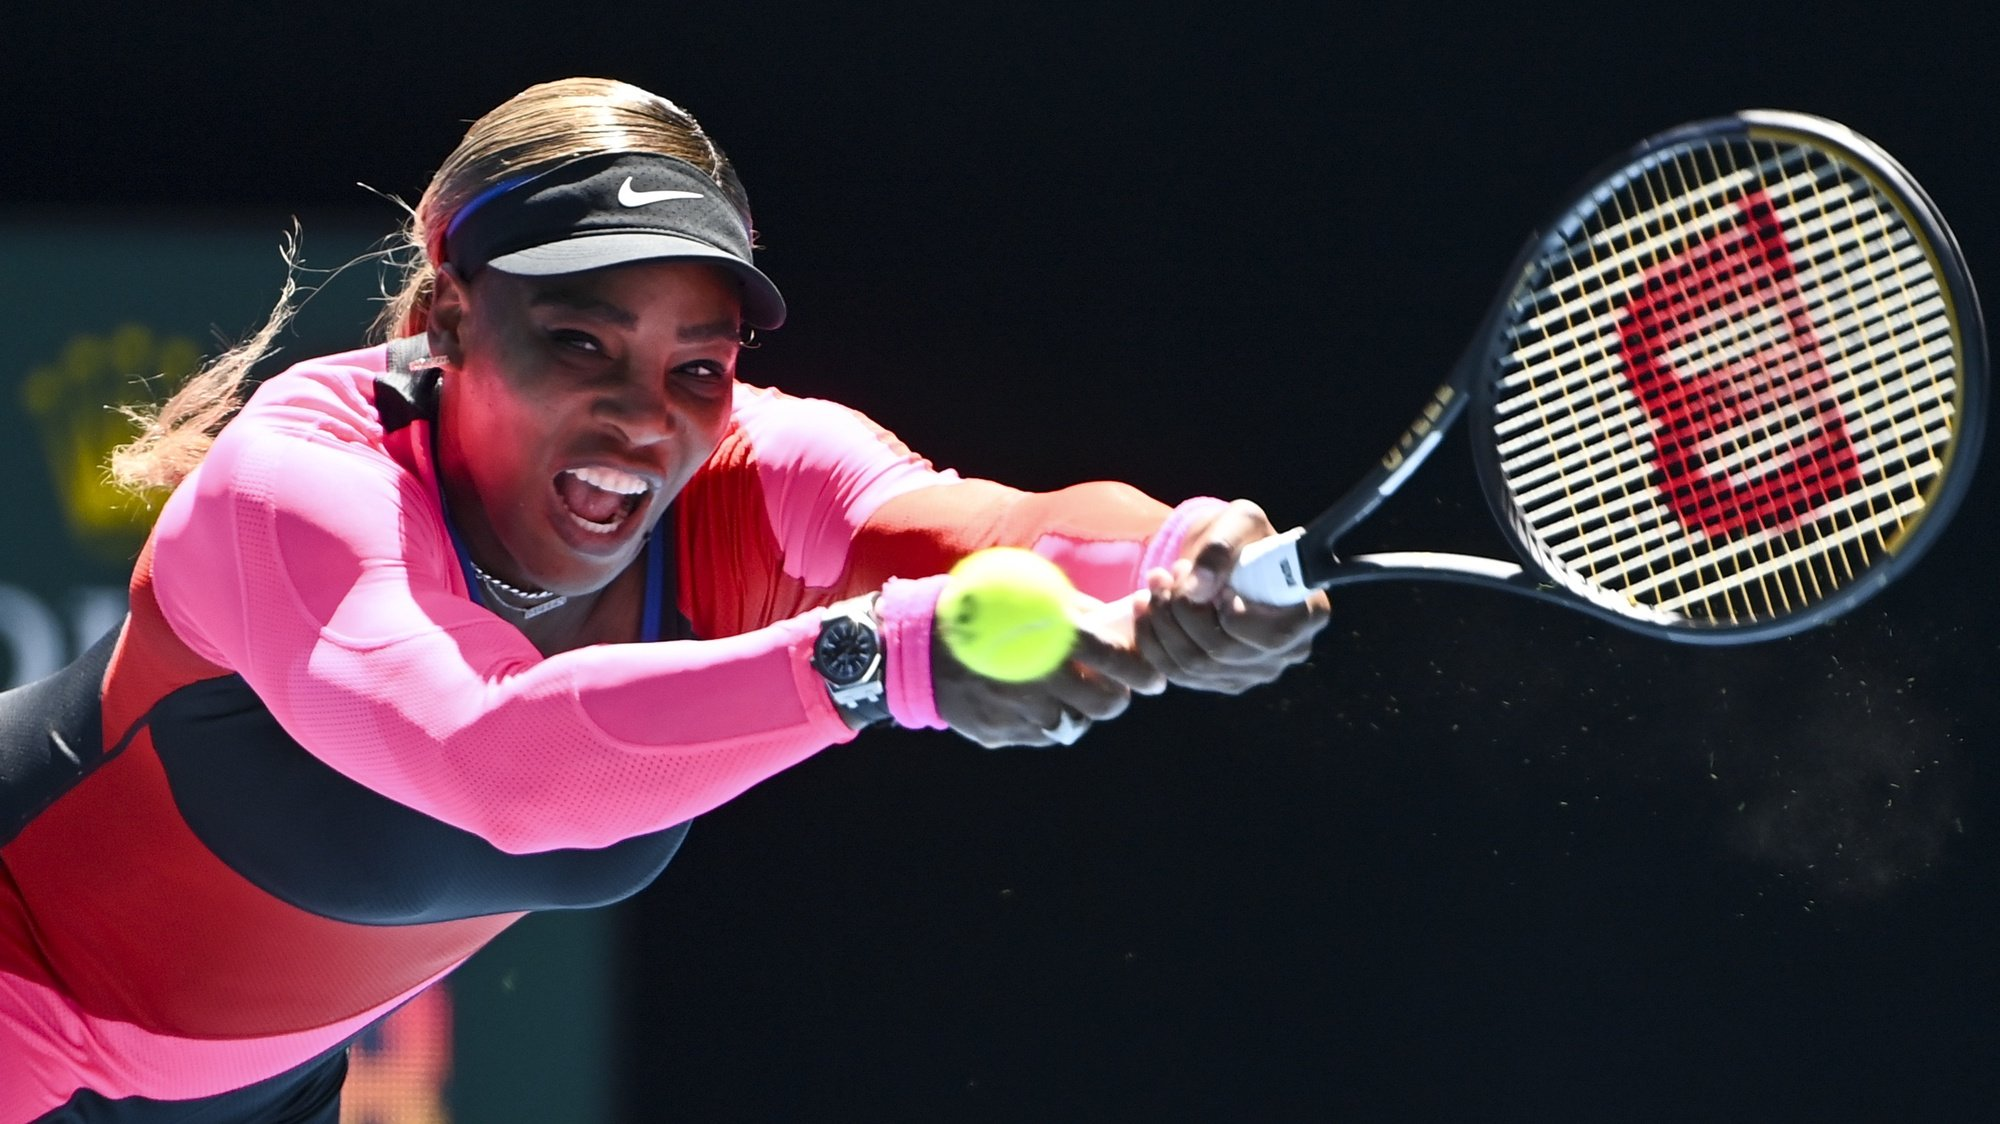 epa09000029 Serena Williams of the United States of America in action against Nina Stojanovic of Serbia during their second round match of the Australian Open Grand Slam tennis tournament in Melbourne, Australia, 10 February 2021.  EPA/DAVE HUNT  AUSTRALIA AND NEW ZEALAND OUT